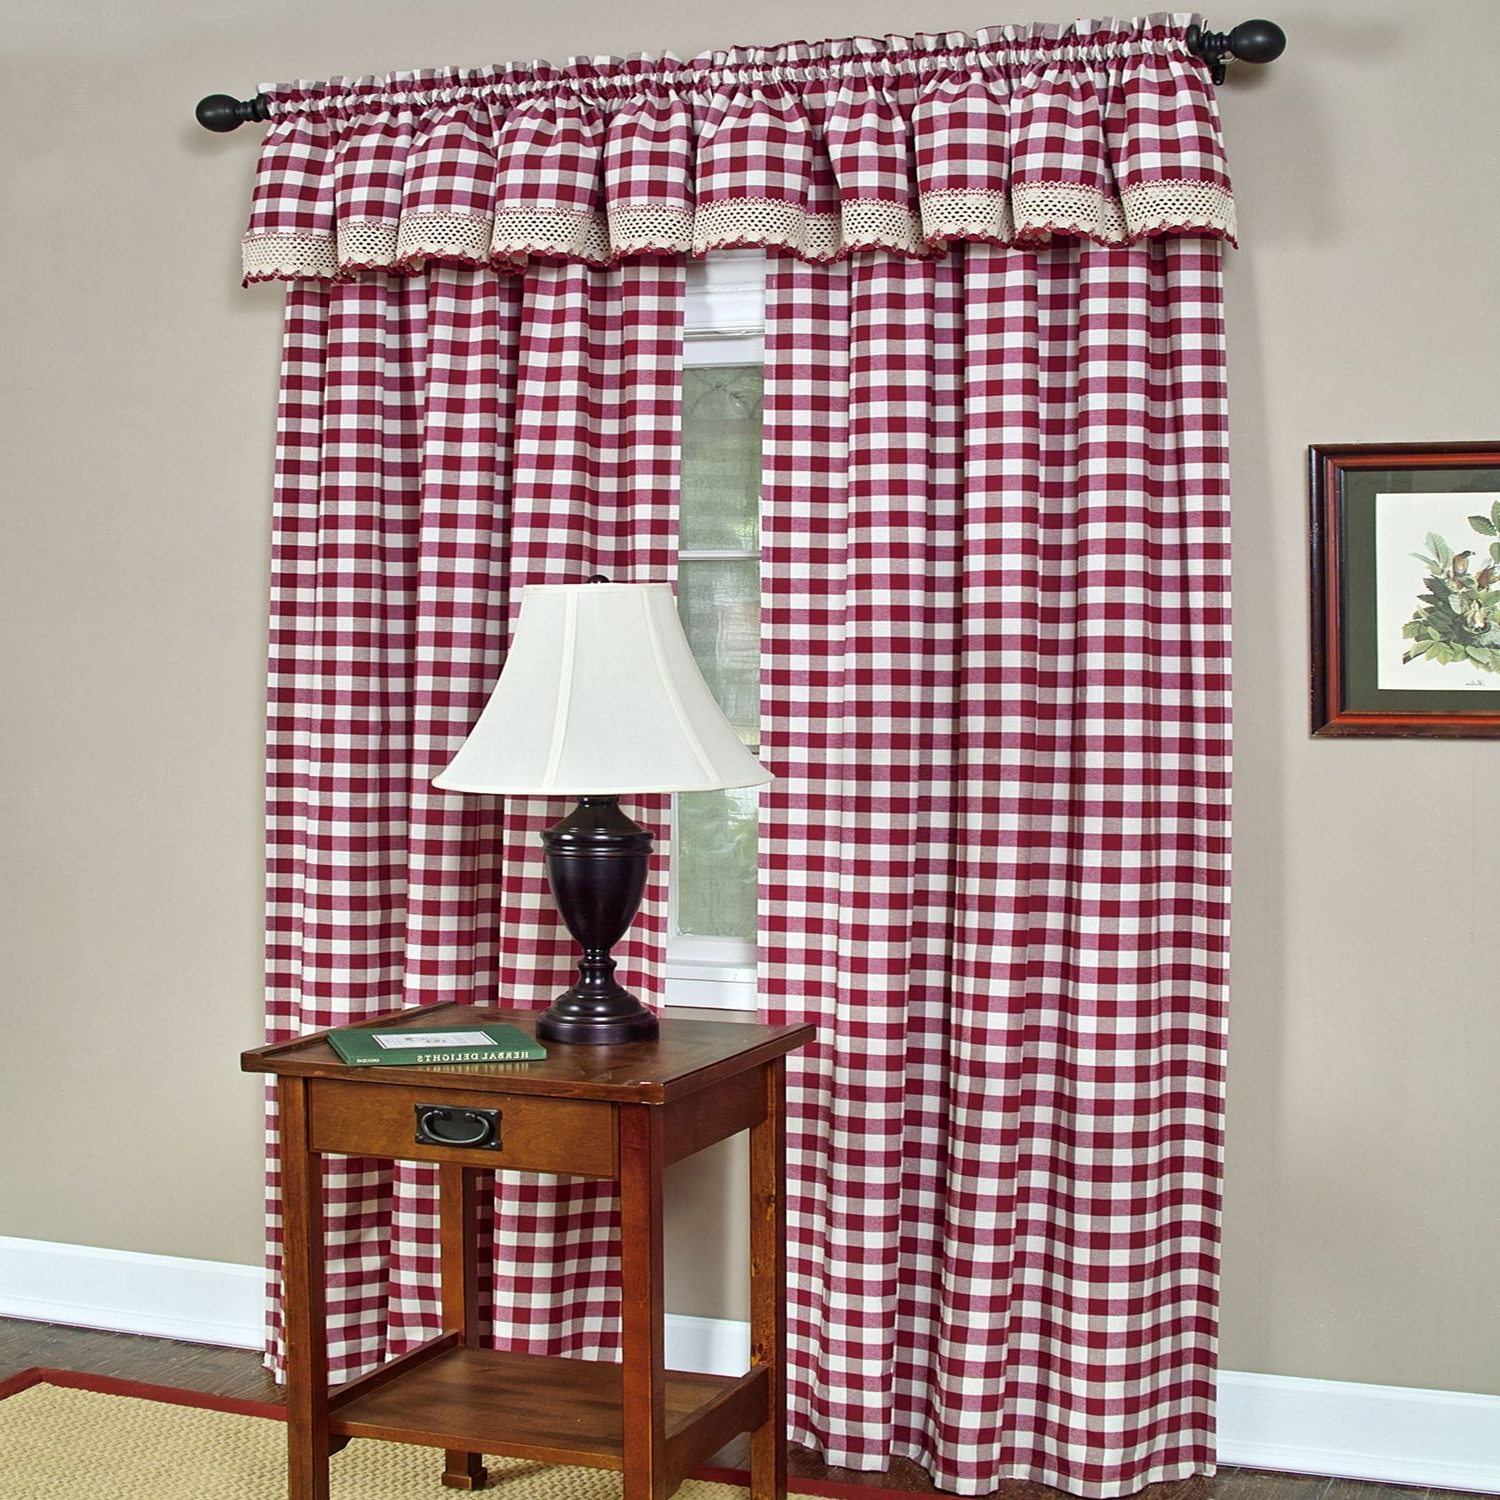 Best And Newest Classic Buffalo Check Window Panels Or Valances In 2019 Inside Burgundy Cotton Blend Classic Checkered Decorative Window Curtains (View 14 of 20)